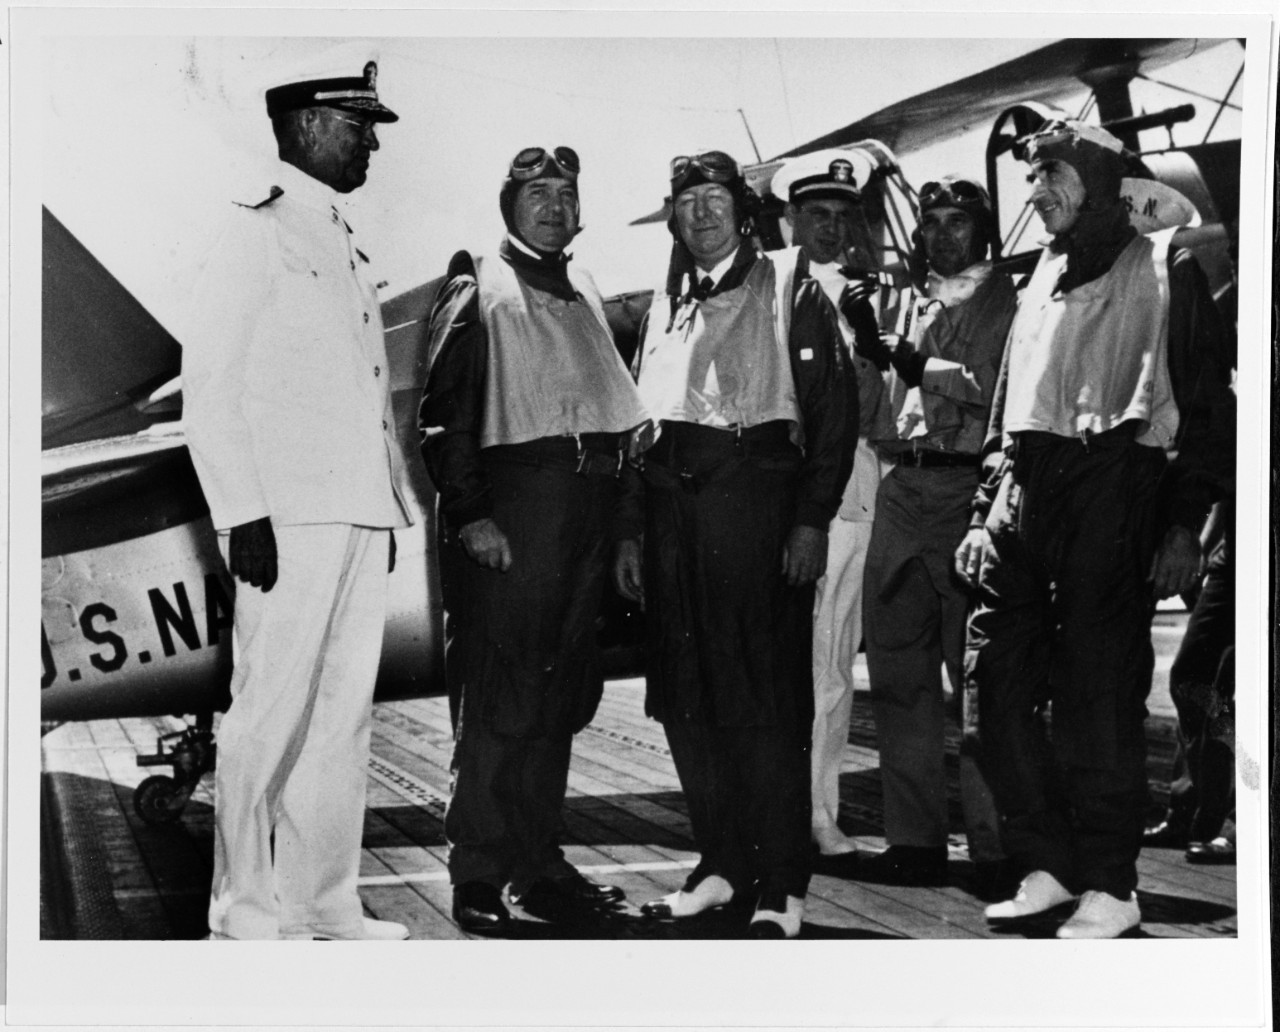 Secretary of the Navy Frank Knox (center) prepares for his flight from Enterprise to NAS Pearl Harbor, 13 September 1940. Additional men in the picture include: Adm. Richardson (left); Cmdr. Morton L. Deyo; and Lt. Cmdr. Edward C. Ewen, Enterprise Air Group Commander (left of Deyo and putting his gloves on). The men stand before an SBC-4 (most likely BuNo. 1295). (Naval History and Heritage Command Photograph NH 50281)